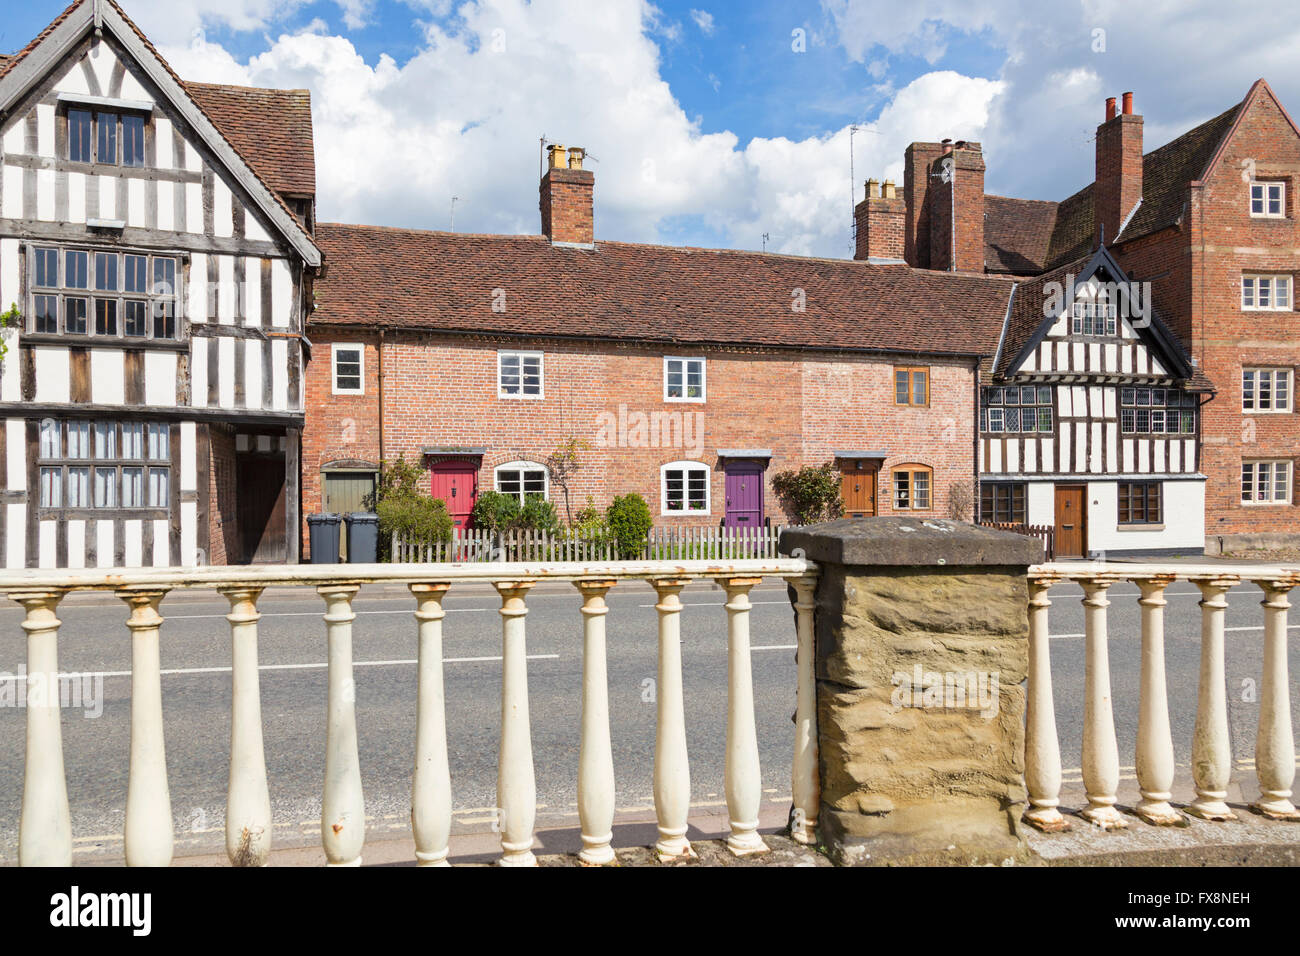 Historic buildings in the riverside town of Bewdley, Worcestershire, England, UK - Stock Image